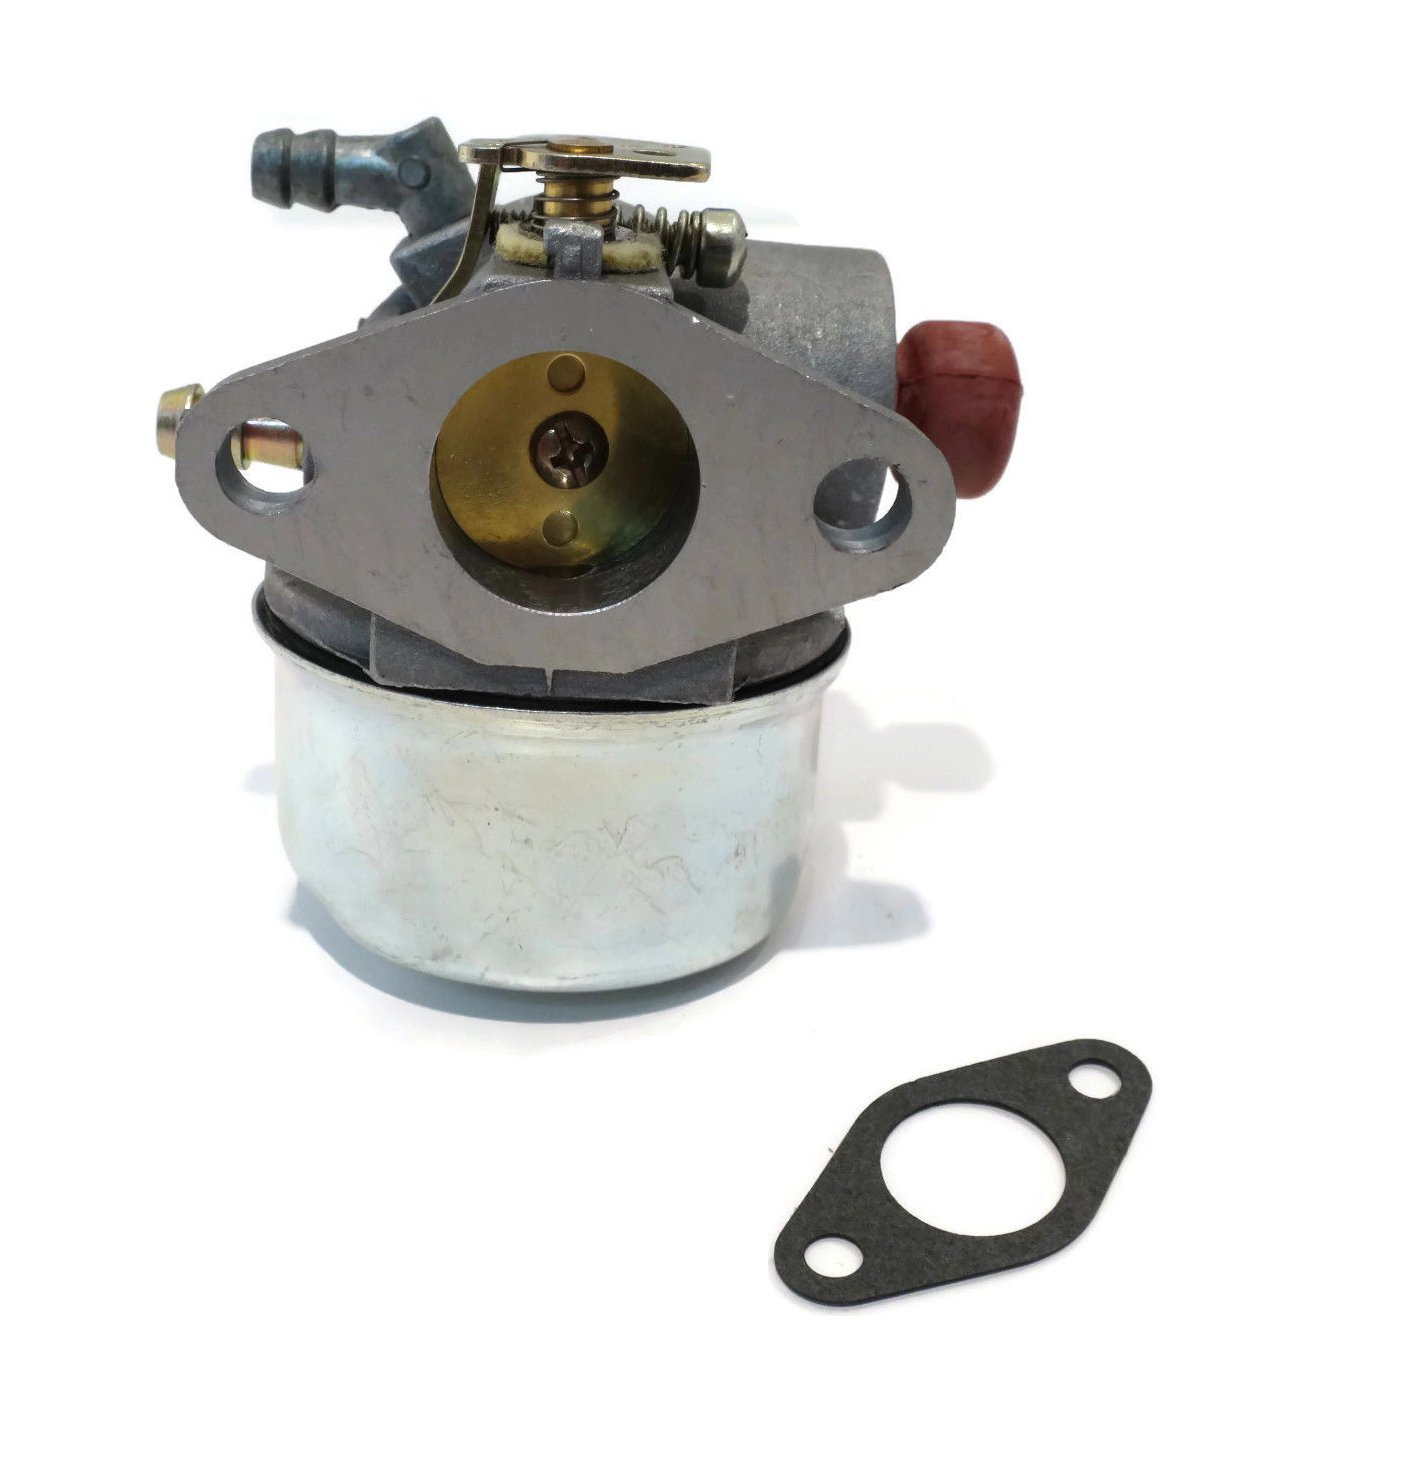 TM Replace Carburetor Carb for Tecumseh 640004 640014 640025 640025A 640025B 640025C//OHH50 OHH55 OHH60 OHH65 HIFROM